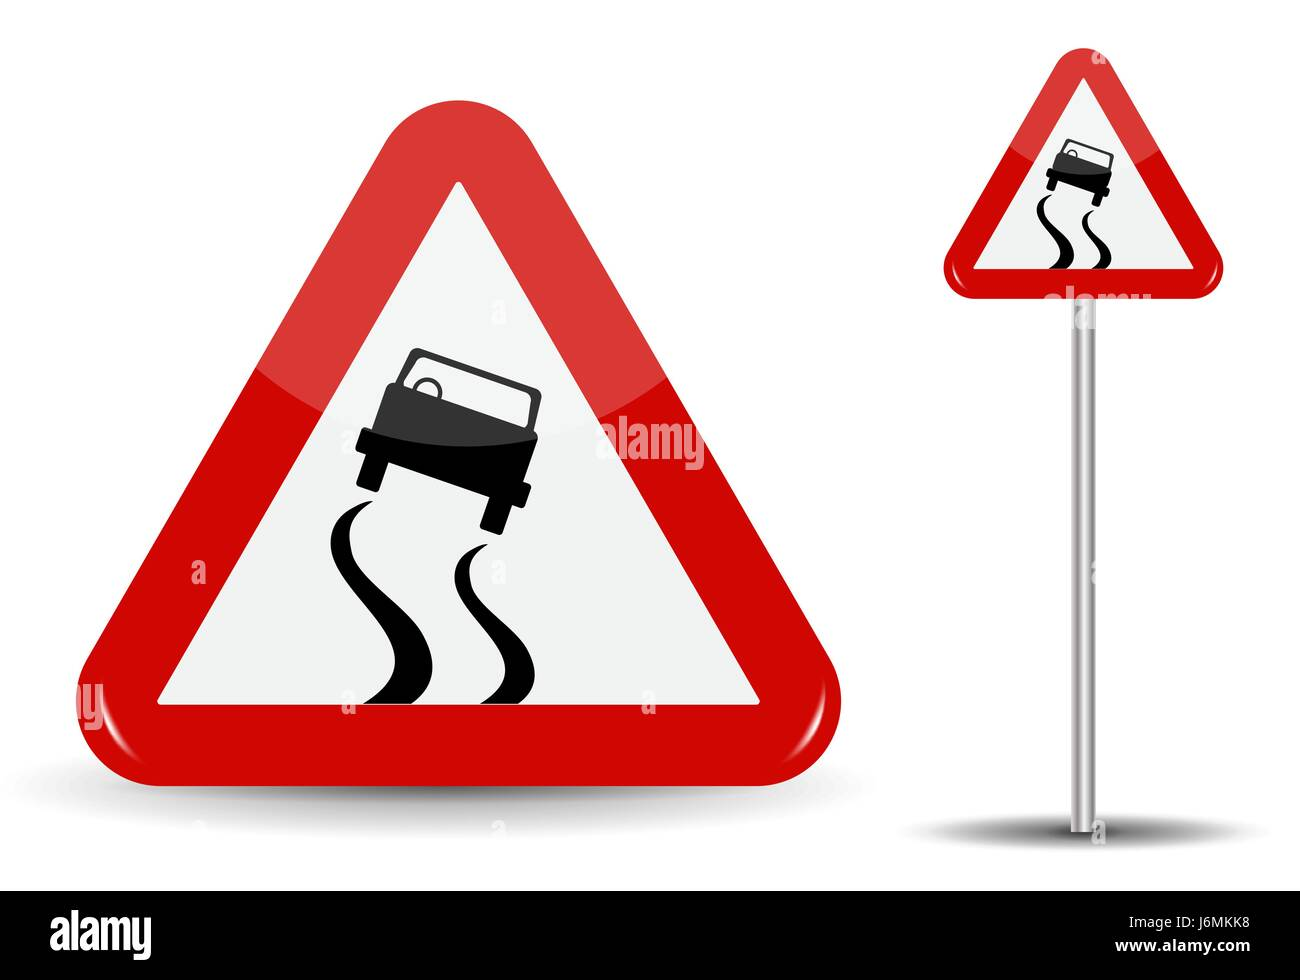 Sign Warning Slippery road. In Red Triangle is a sketchy machine that skidded. Vector Illustration. - Stock Vector